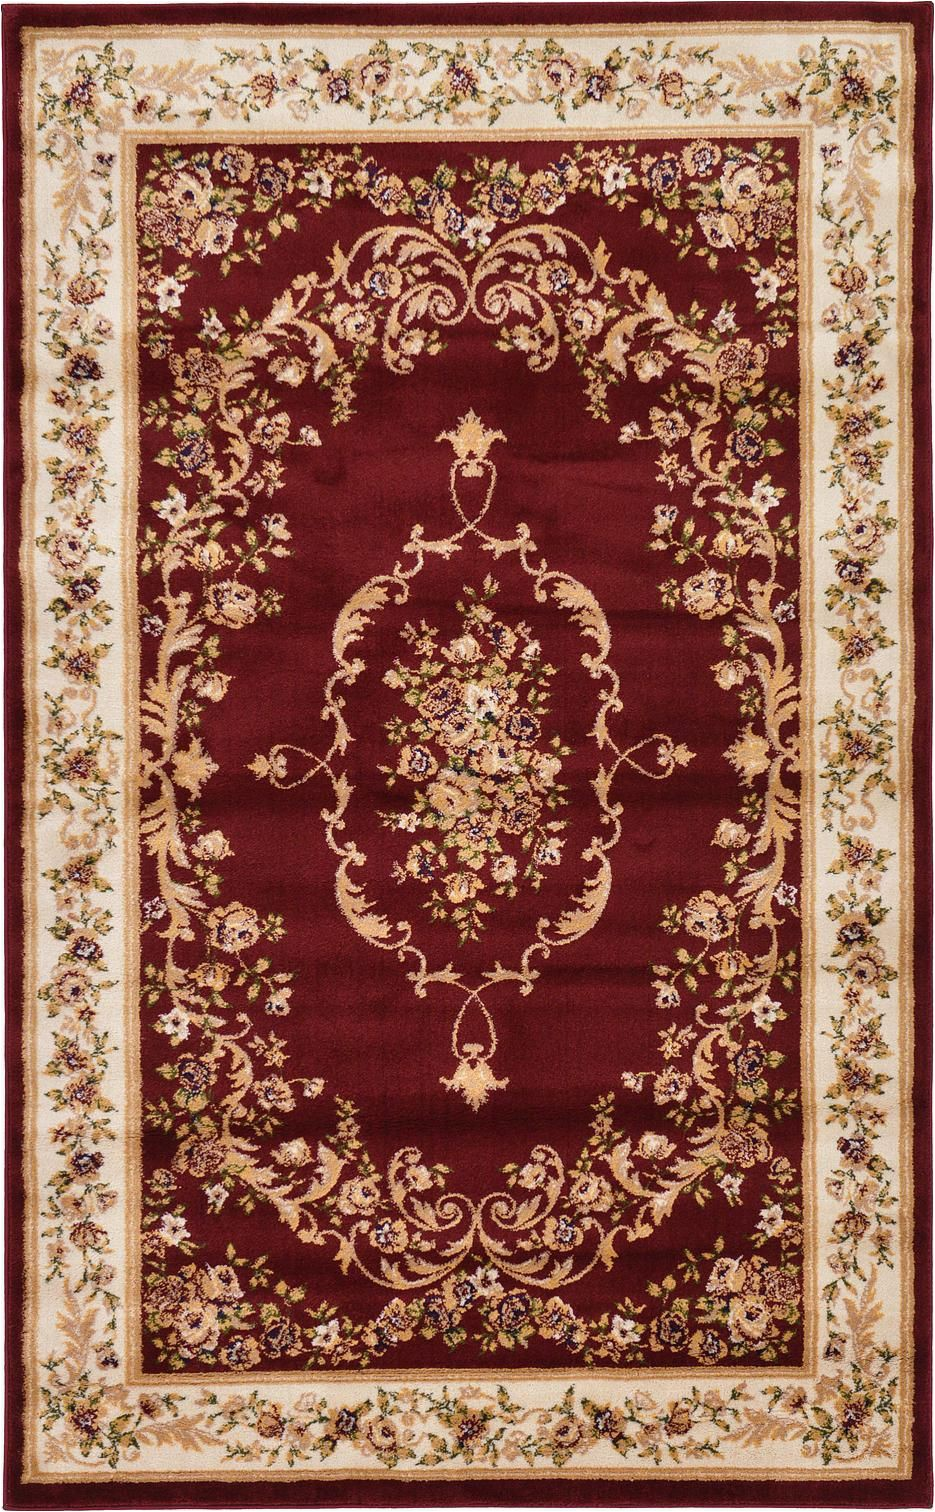 Burgundy and Cream area Rugs Burgundy 5 X 8 Classic Aubusson Rug